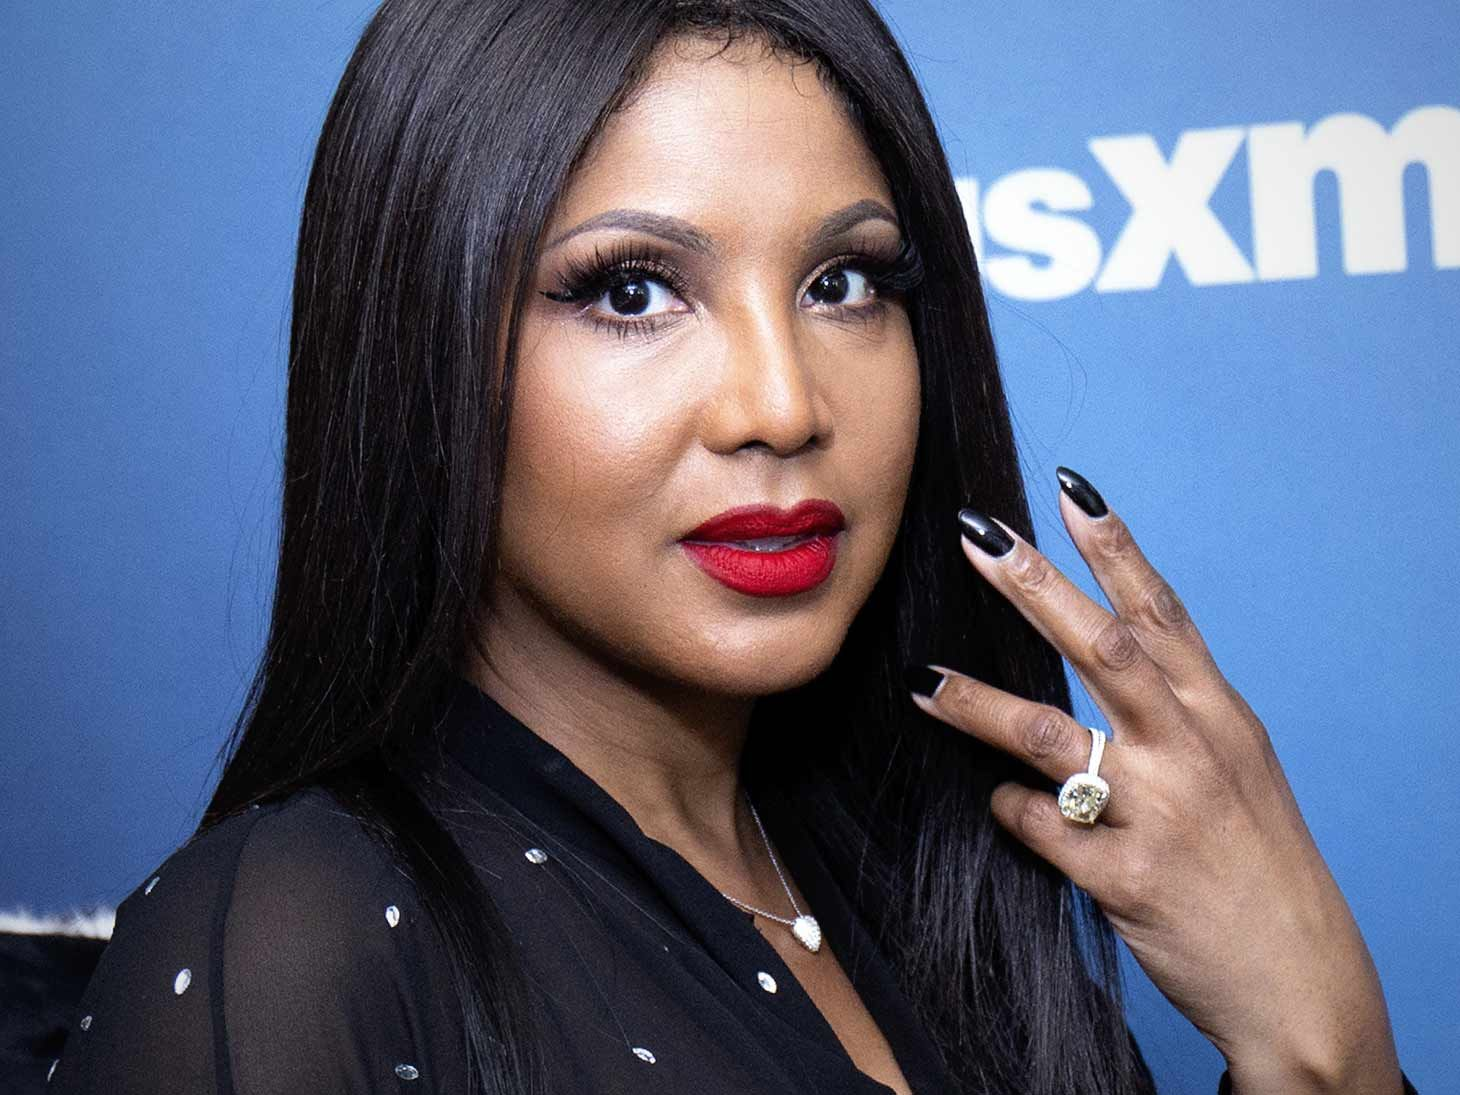 Toni Braxton Shares A Funny Video About The Braxton Family Values